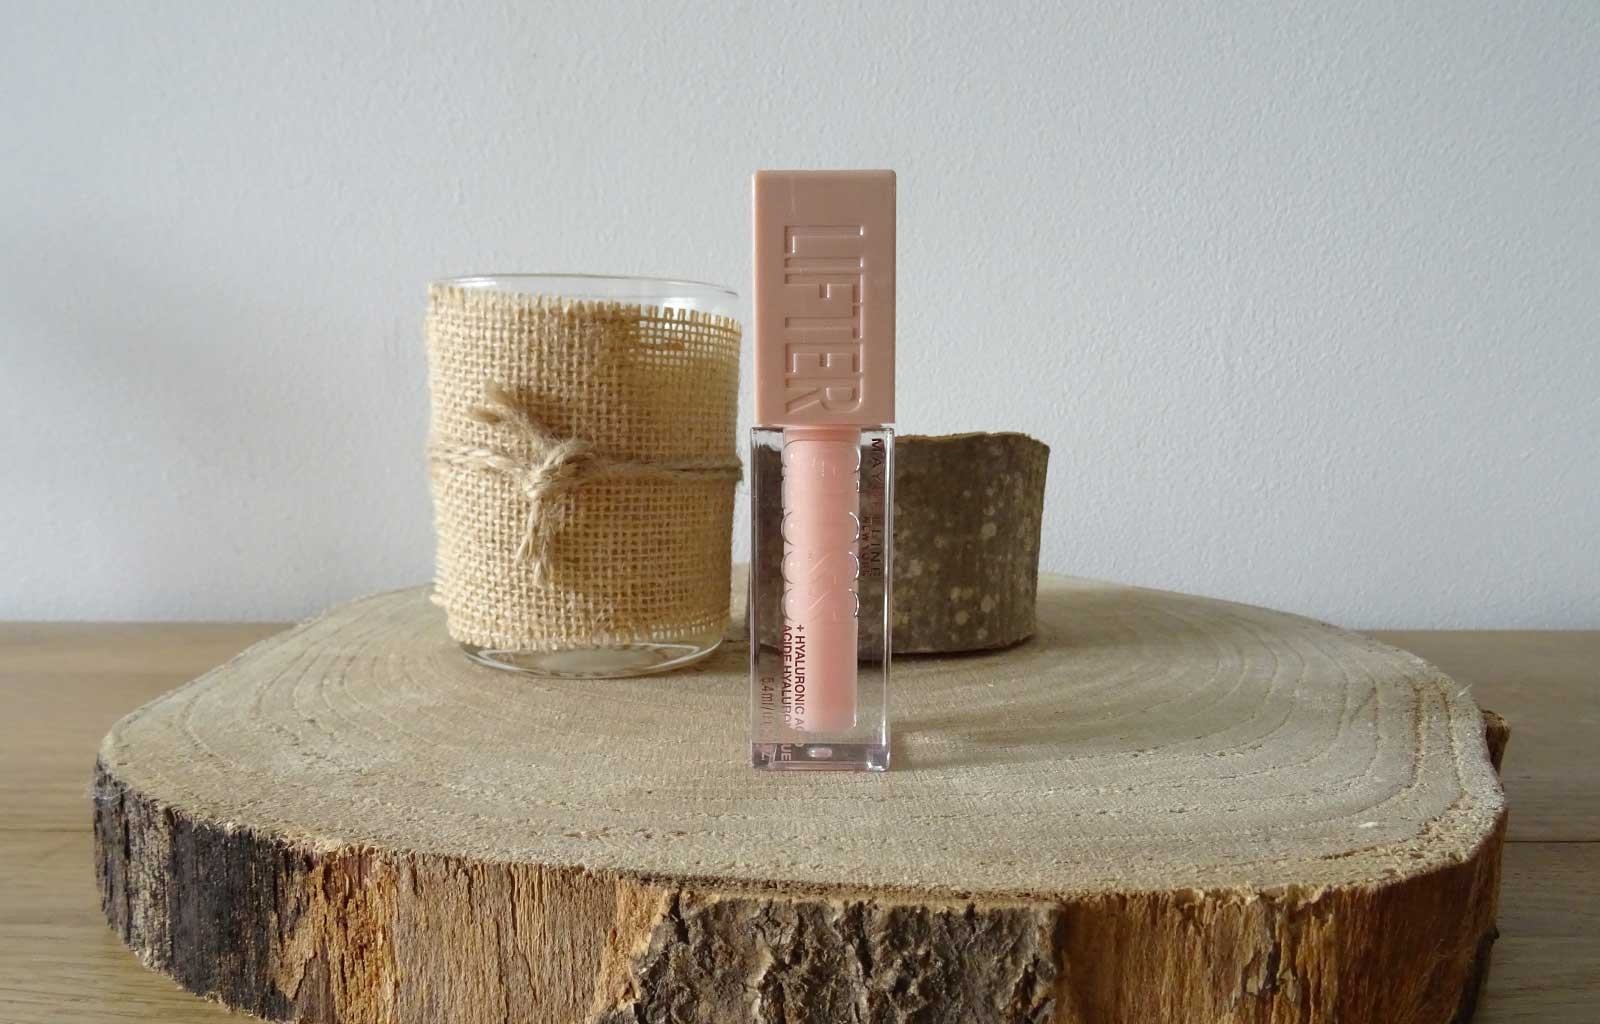 maybelline lifter gloss ice